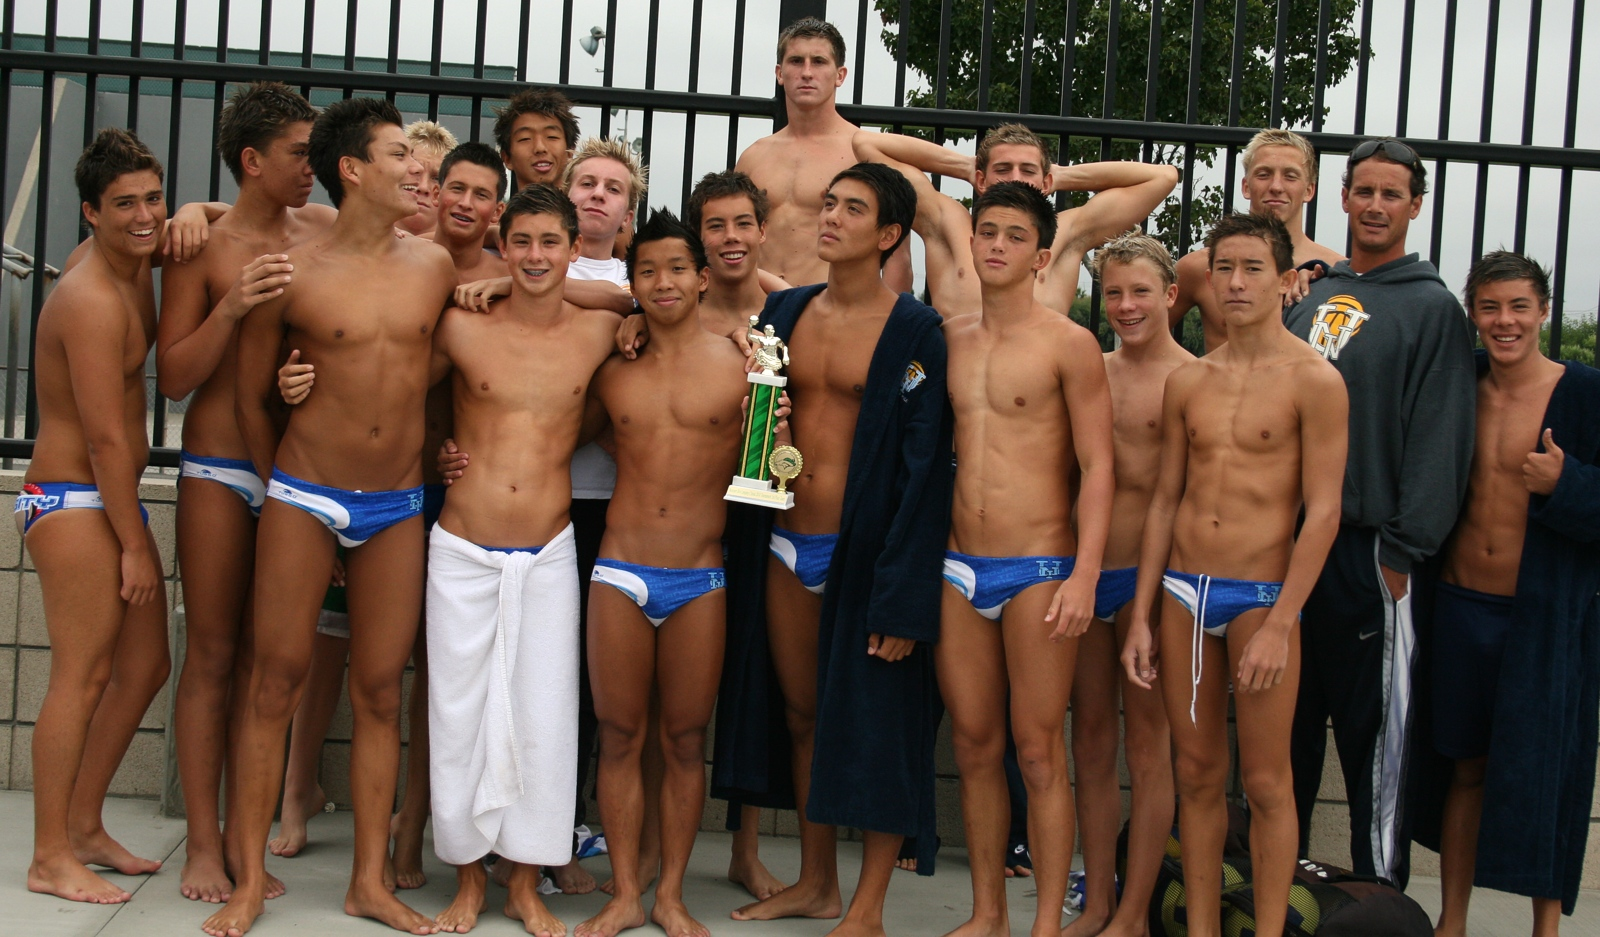 Team Bonner Chevrolet high school boys in speedos with boner Car Tuning